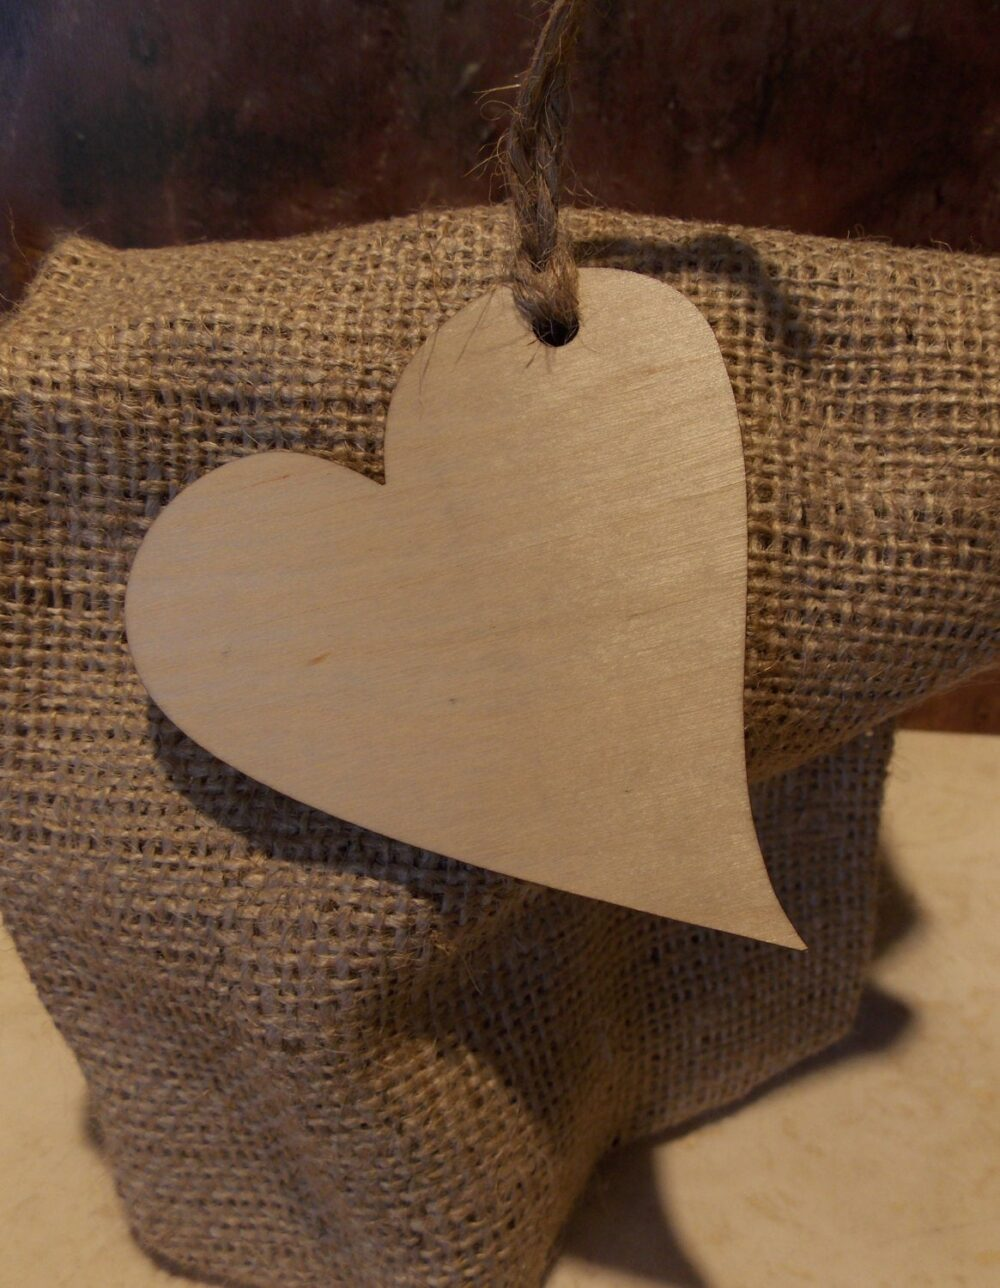 12 Wood Heart Decorations - Favor Tags Wedding Cards Alternative Guest Book Bridesmaid Favor Signing Piece Wish Tree Ornament